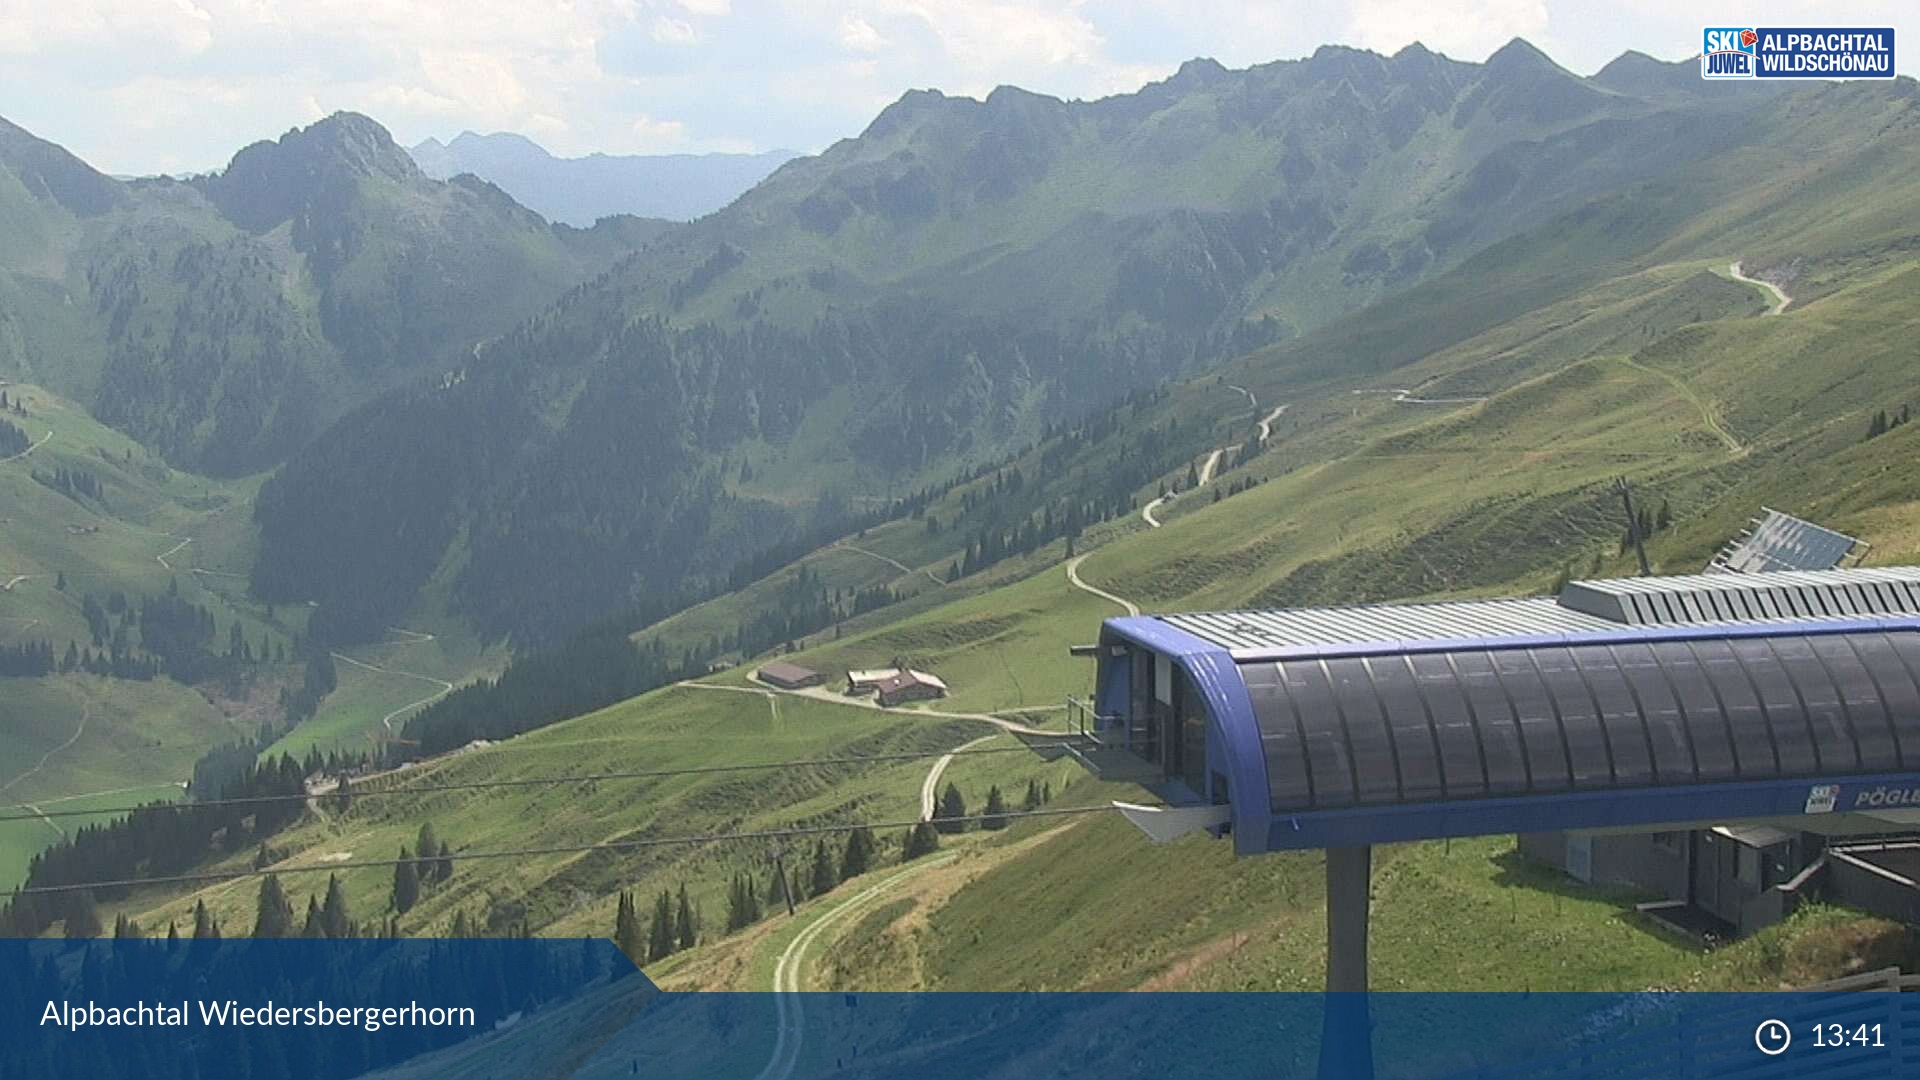 Webcam <br><span> alpbachtal wildschonau</span>